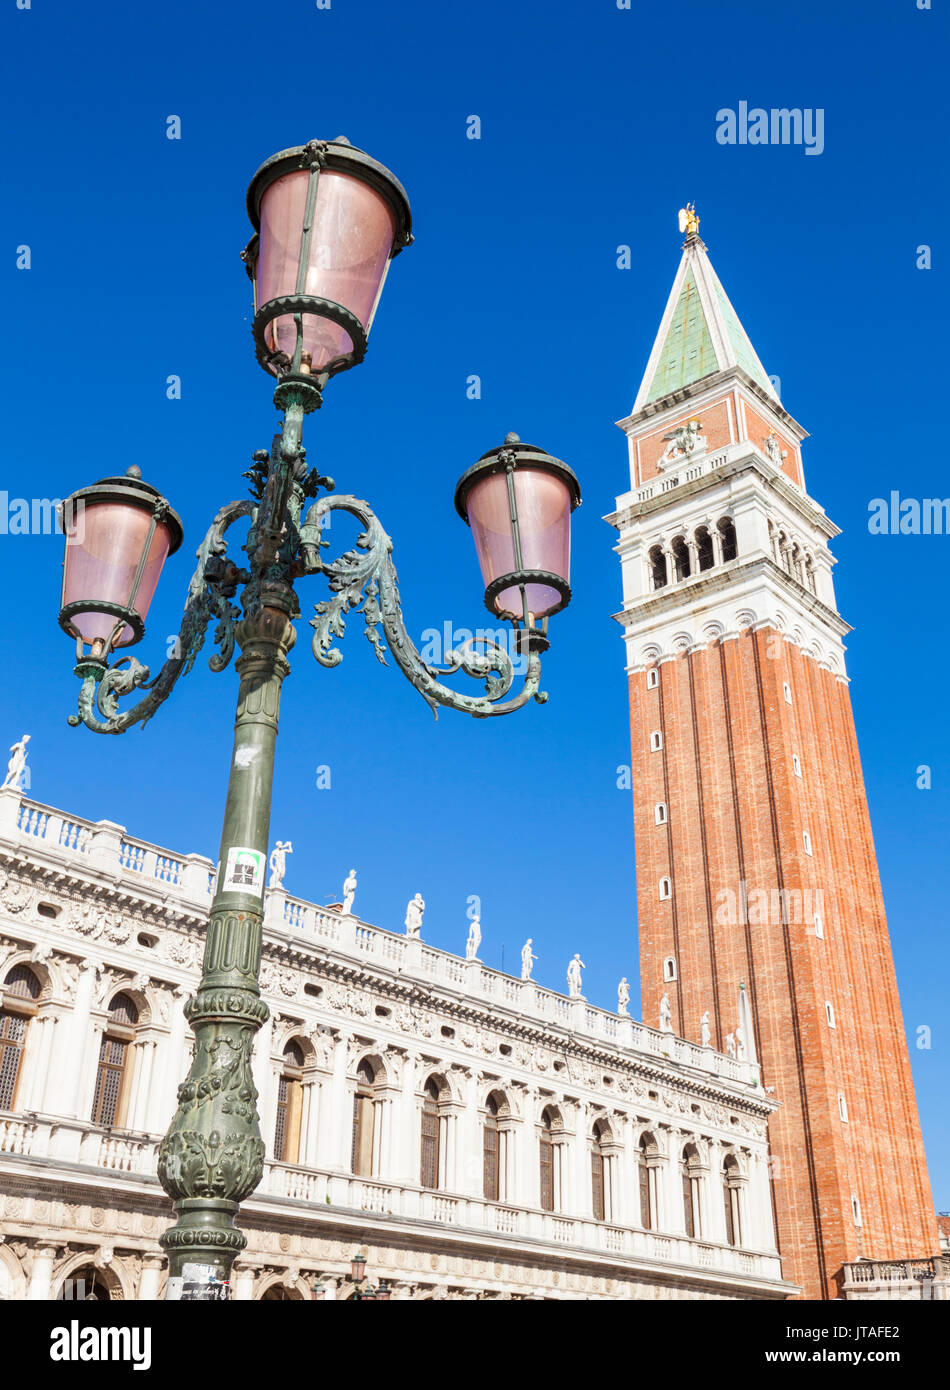 Campanile tower, traditional Venetian lamp post, Piazzetta, St. Marks Square, Venice, UNESCO, Veneto, Italy, Europe - Stock Image